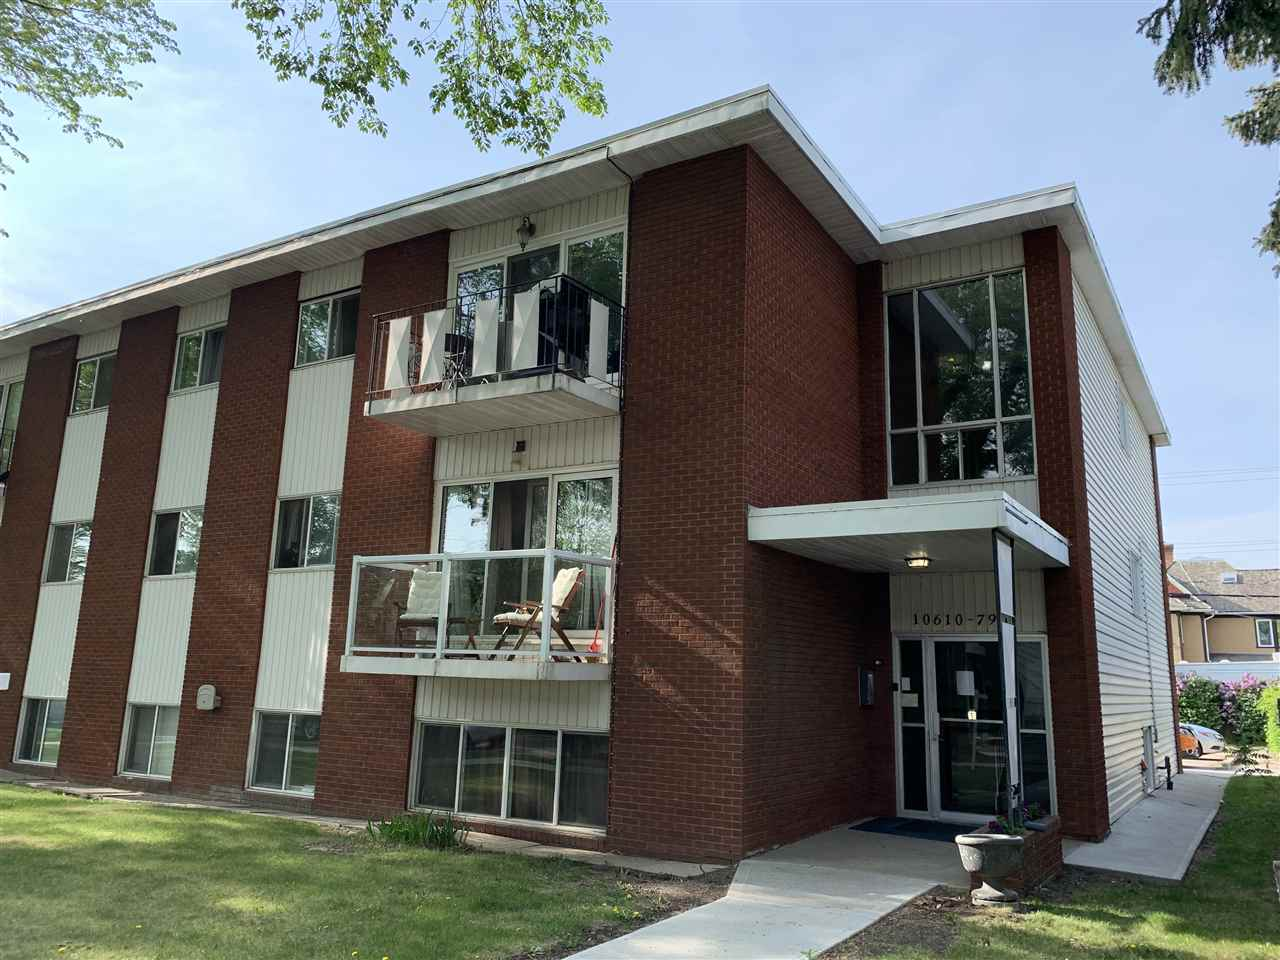 MLS® listing #E4165698 for sale located at 101 10610 79 Avenue